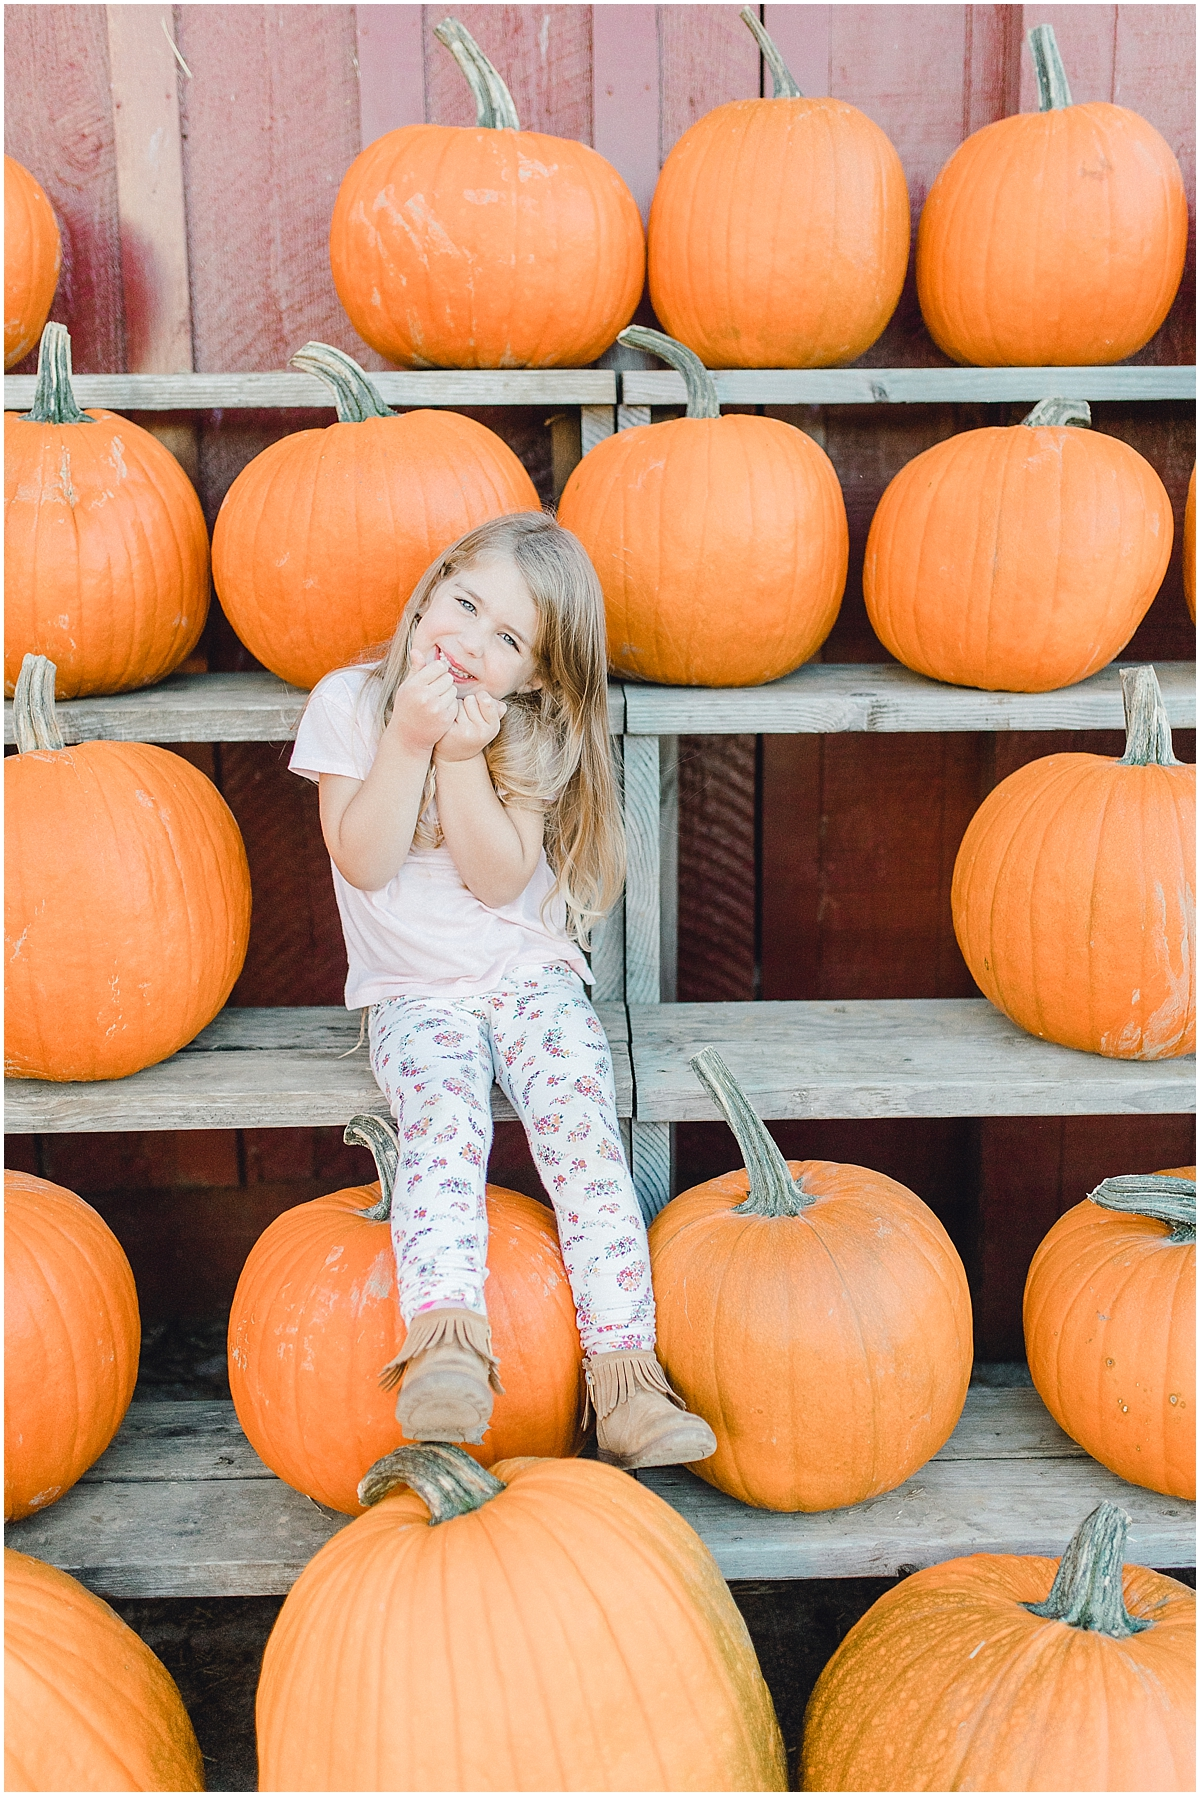 Pumpkin Patch Photo Shoot With Toddler and Mommy | Emma Rose Company Seattle Portland Light and Airy Wedding Photographer | Kindred Presets | Film_0006.jpg